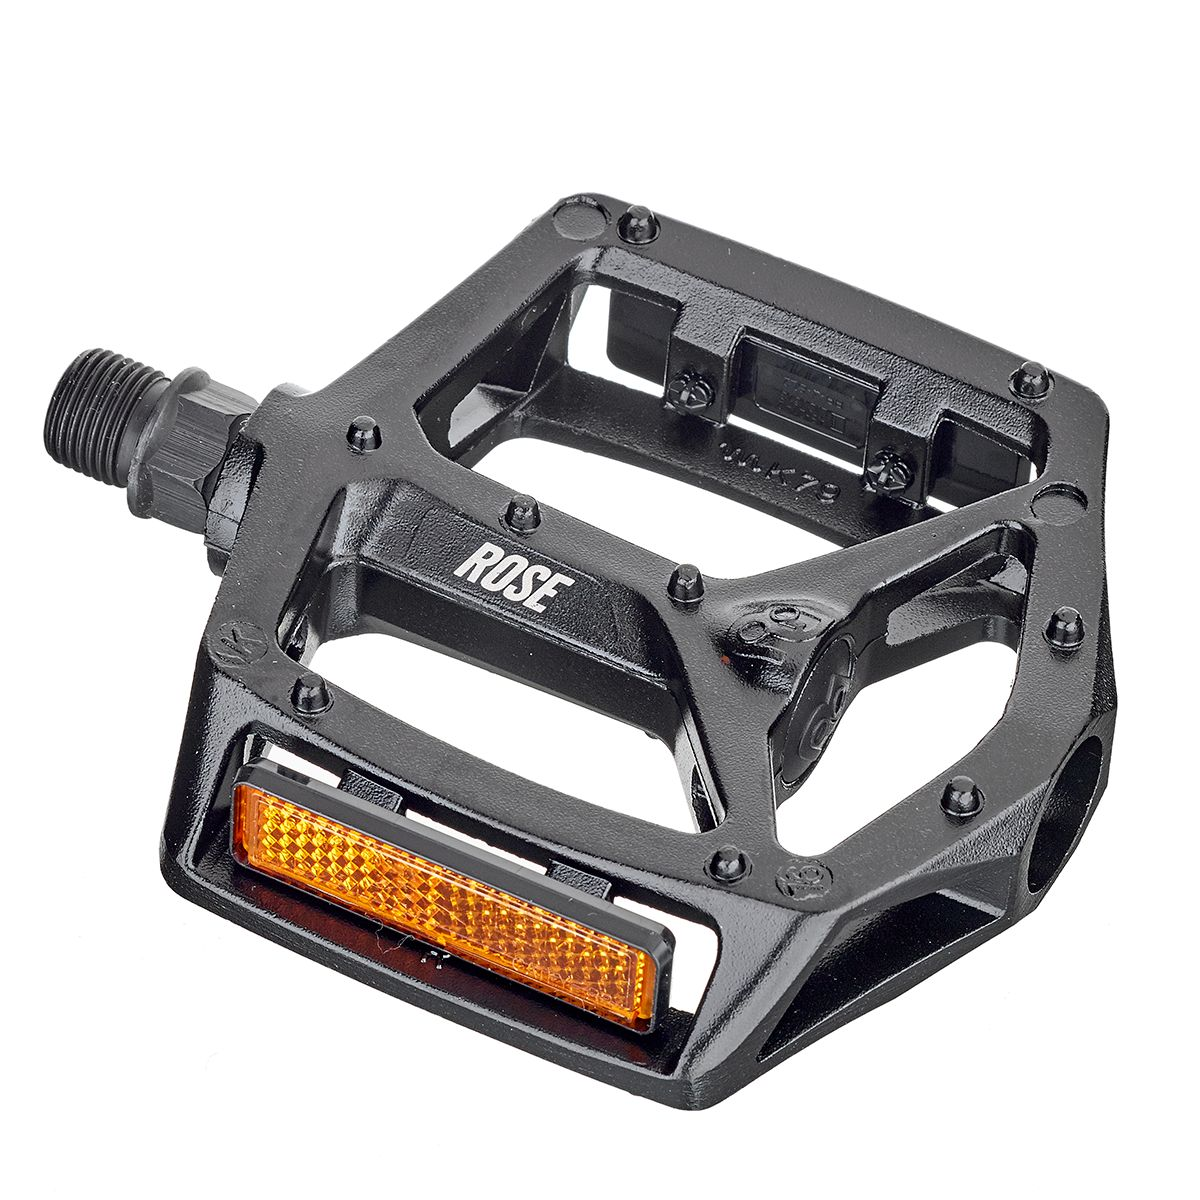 Pro 249 pedals